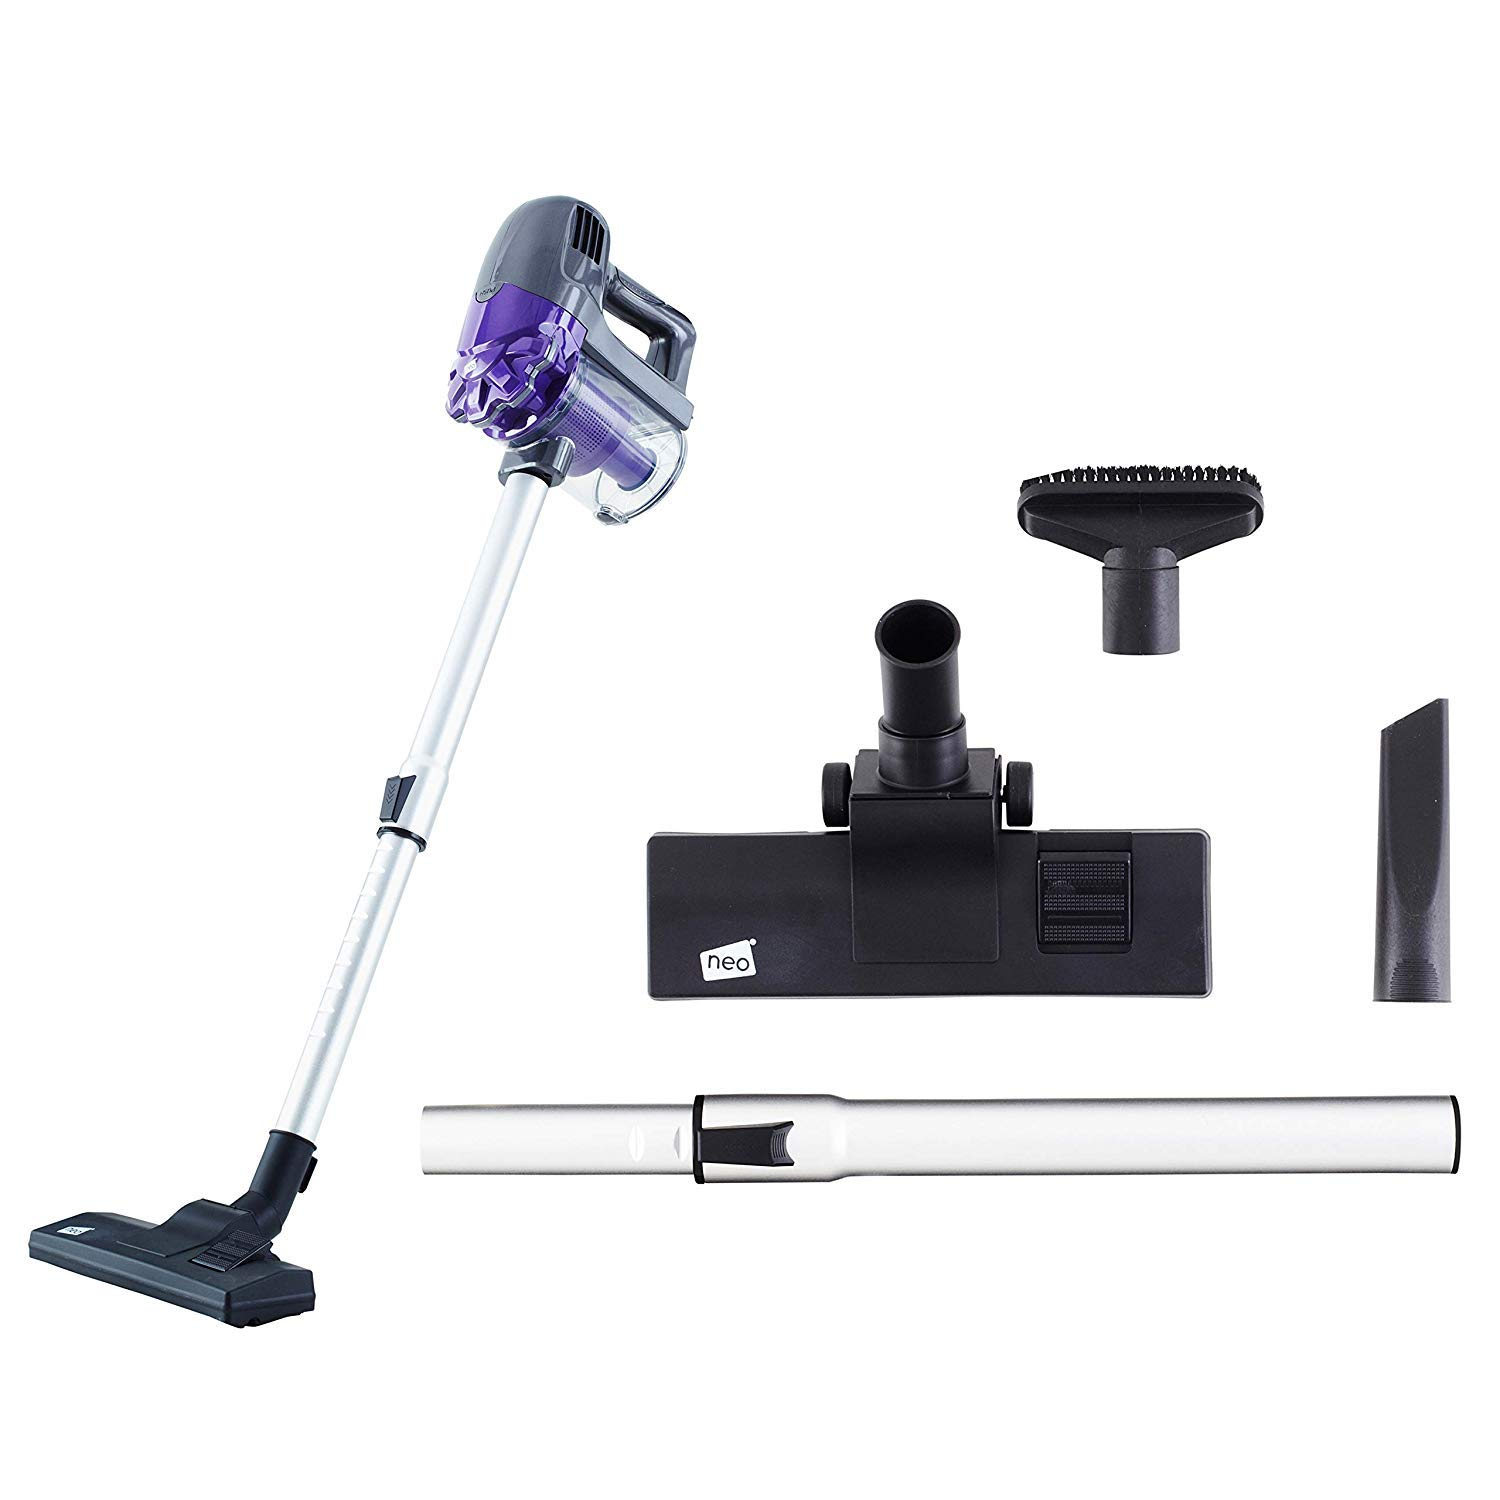 22.2V Lithium Cordless Hoover Upright 2in1 Handheld Stick Vacuum Cleaner Purple